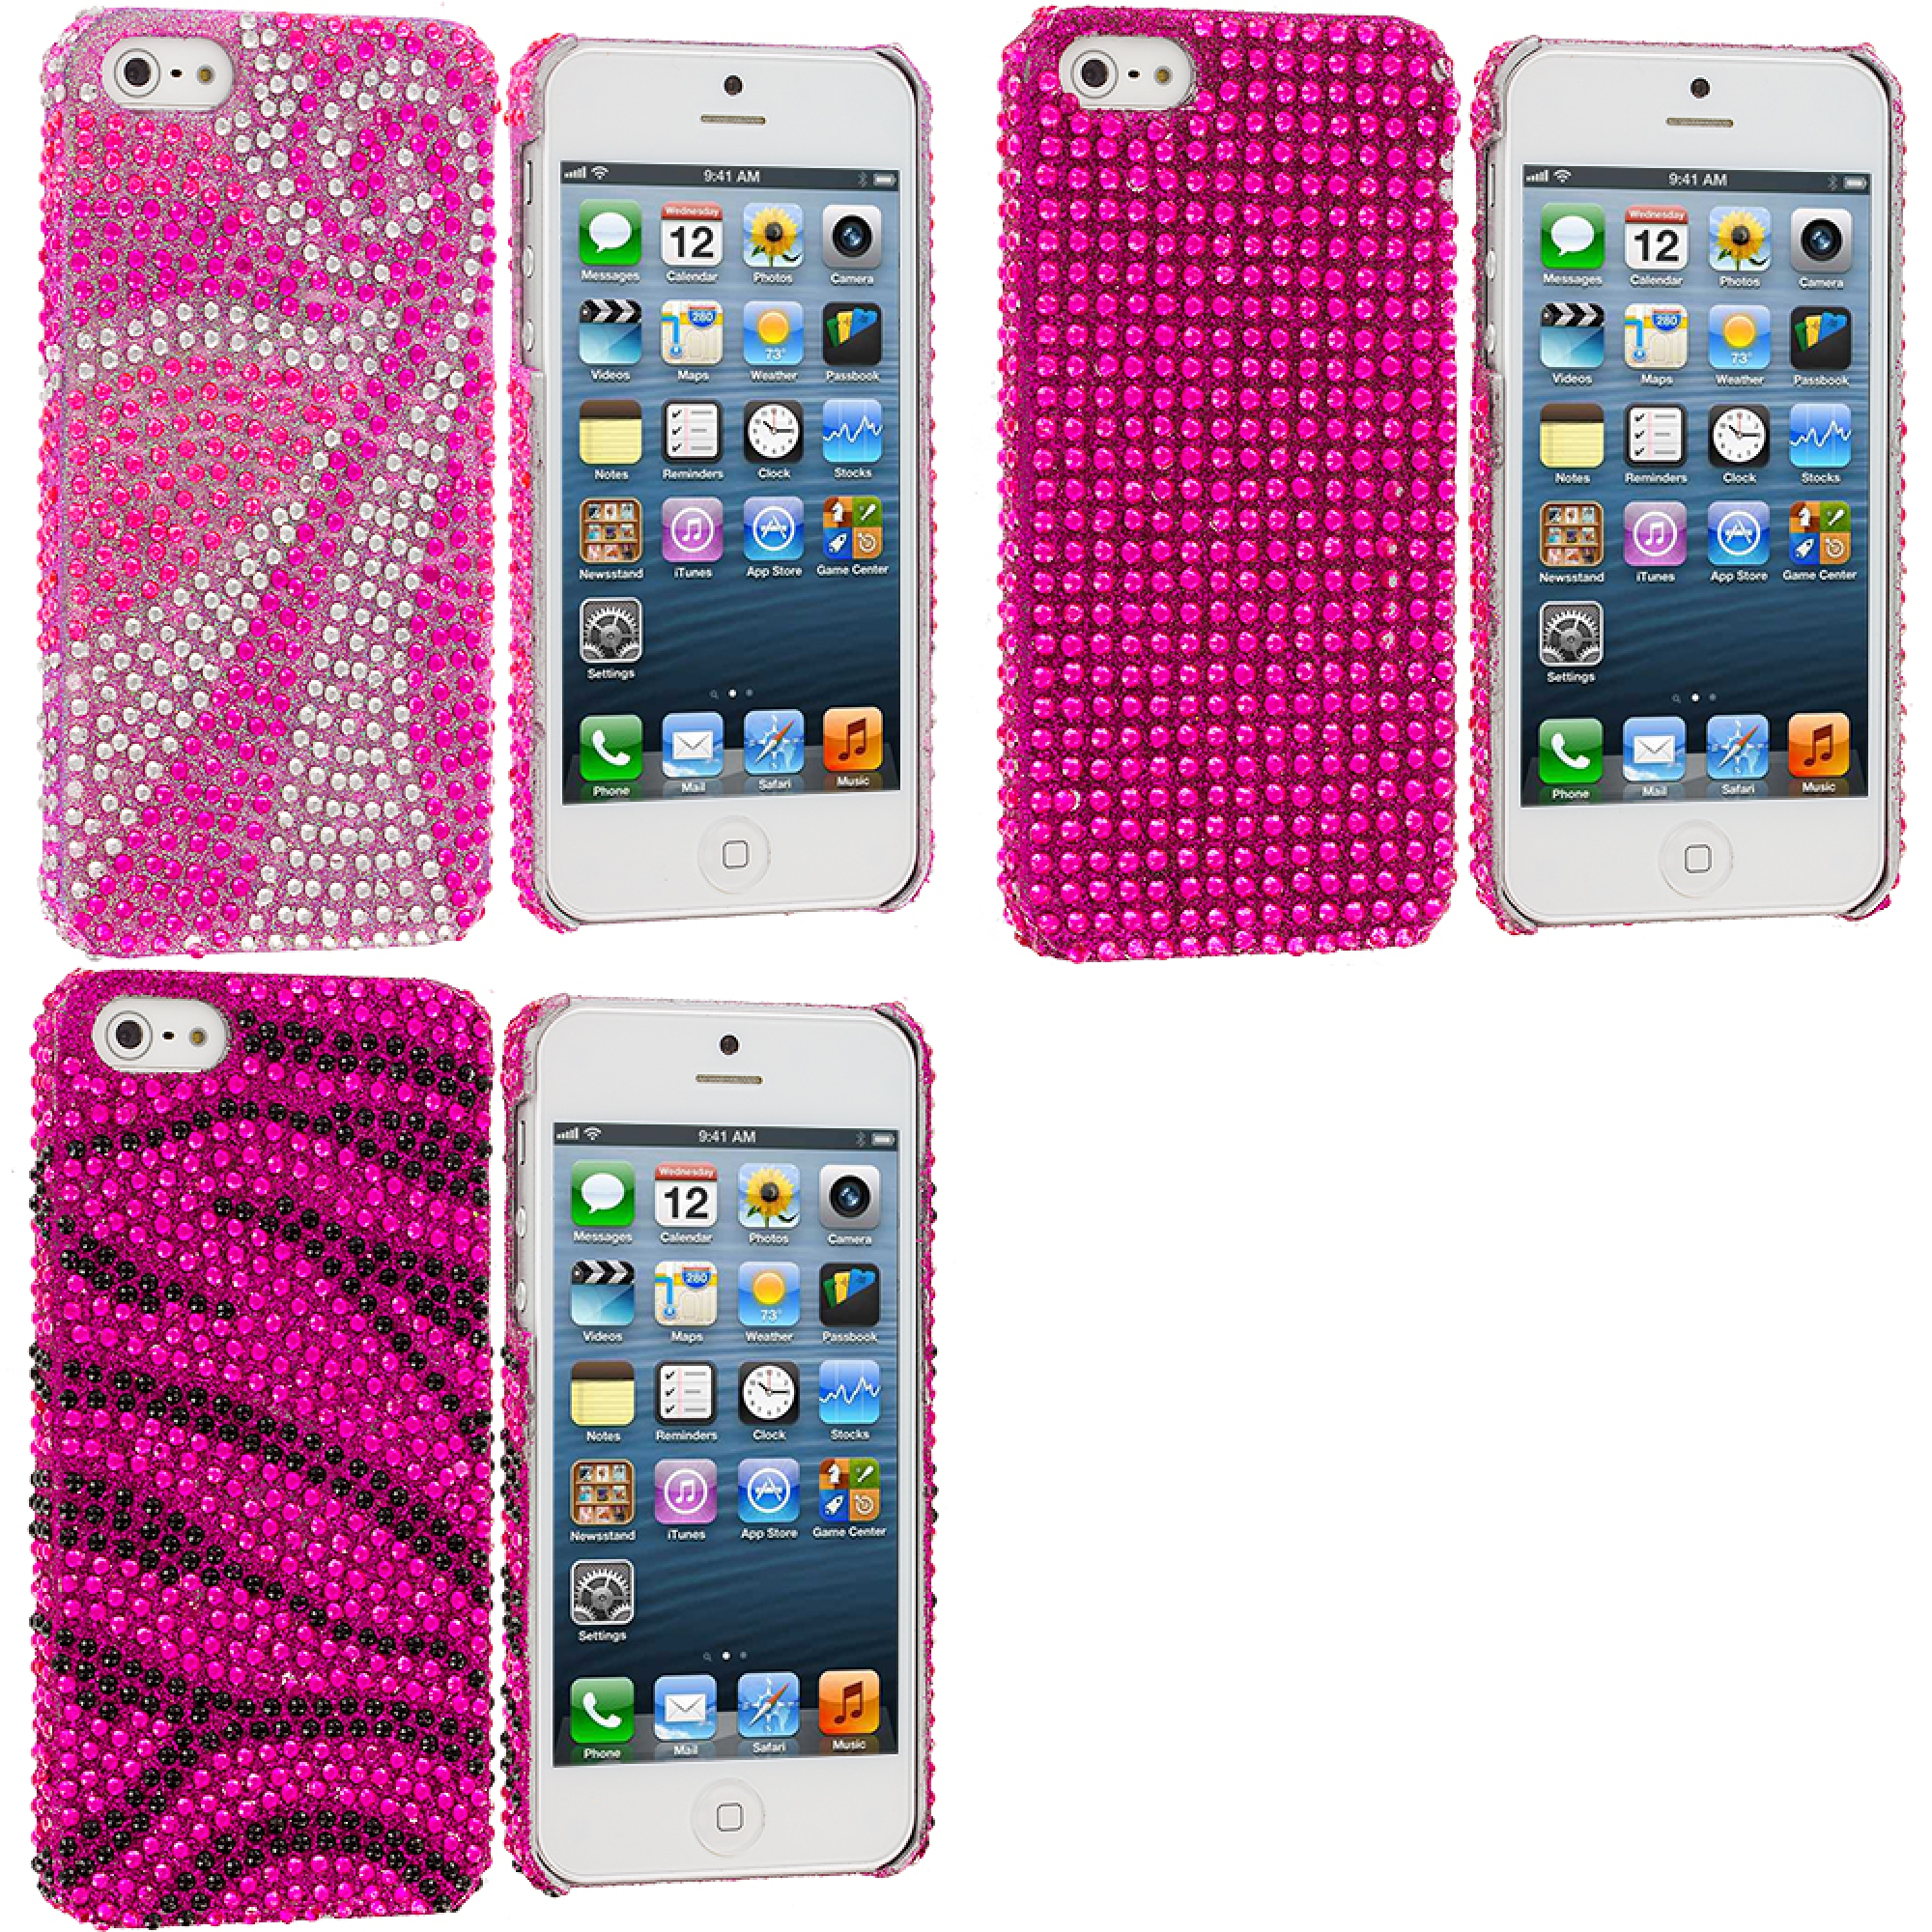 Apple iPhone 5/5S/SE Combo Pack : Phoenix Tail Bling Rhinestone Case Cover